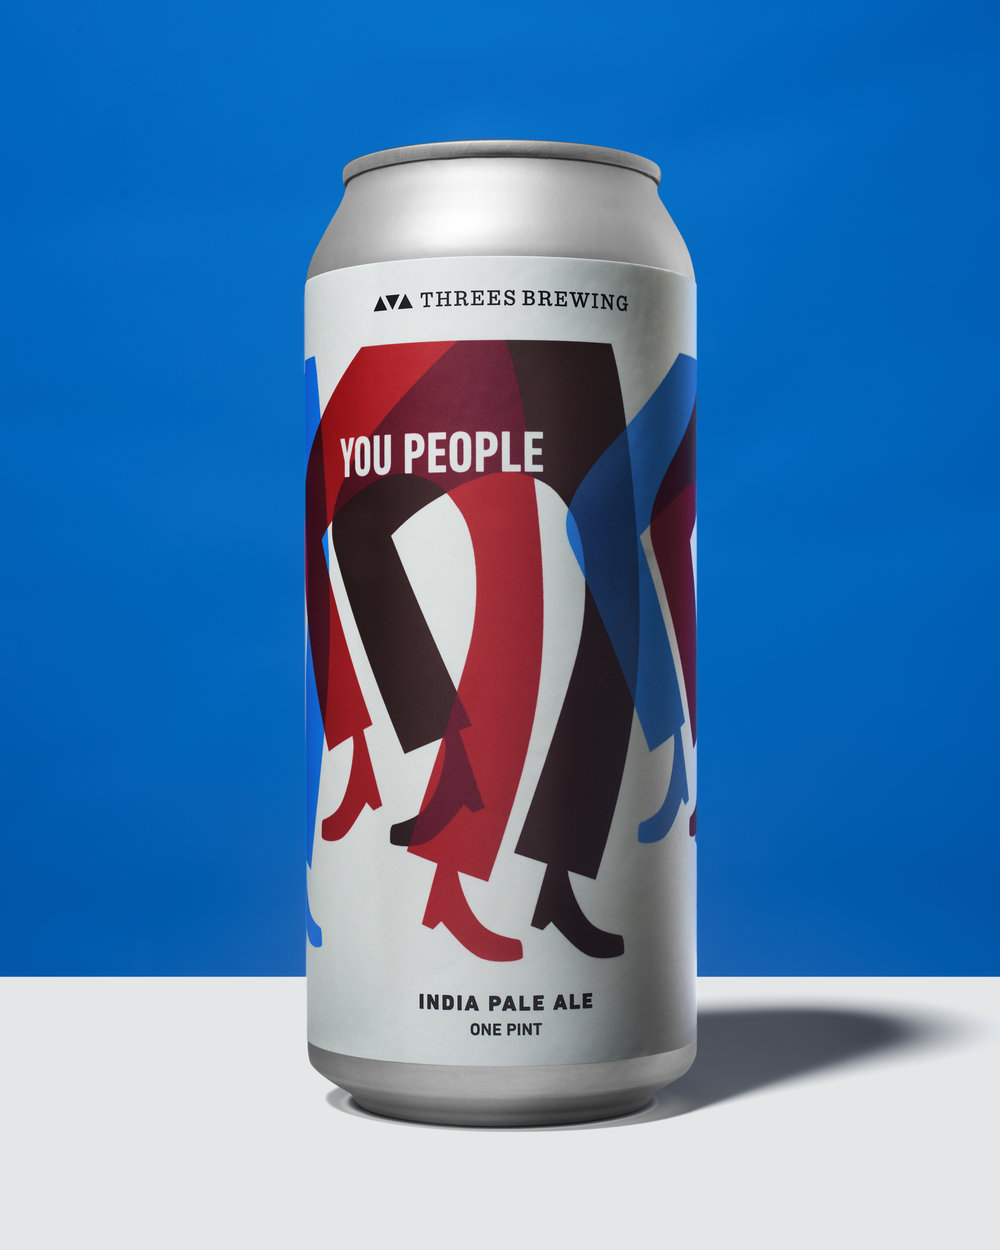 171012_Threes_Single_Beers_YOUPEOPLE_221_A.jpg